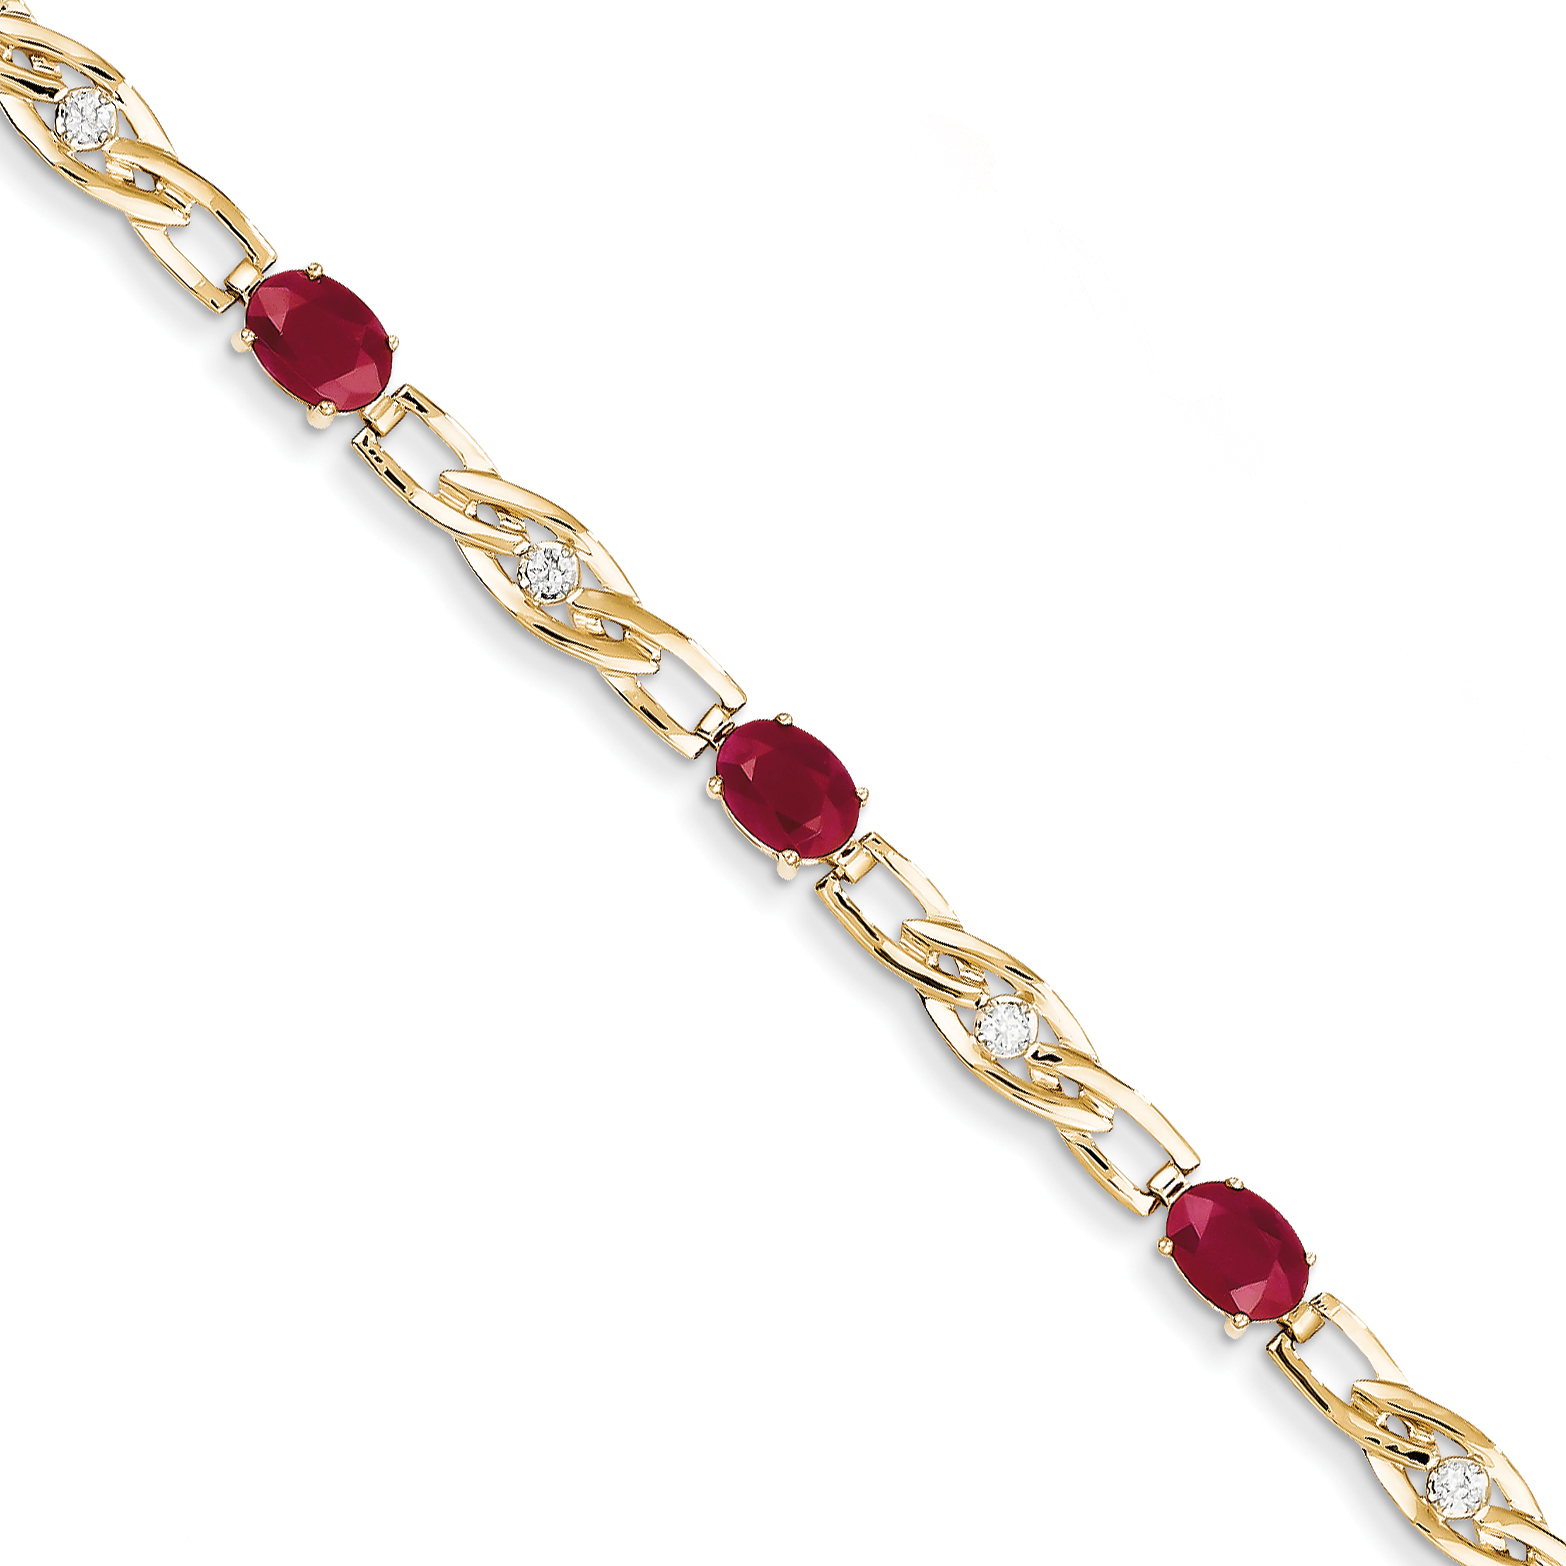 14k Yellow Gold Diamond and Ruby Bracelet by